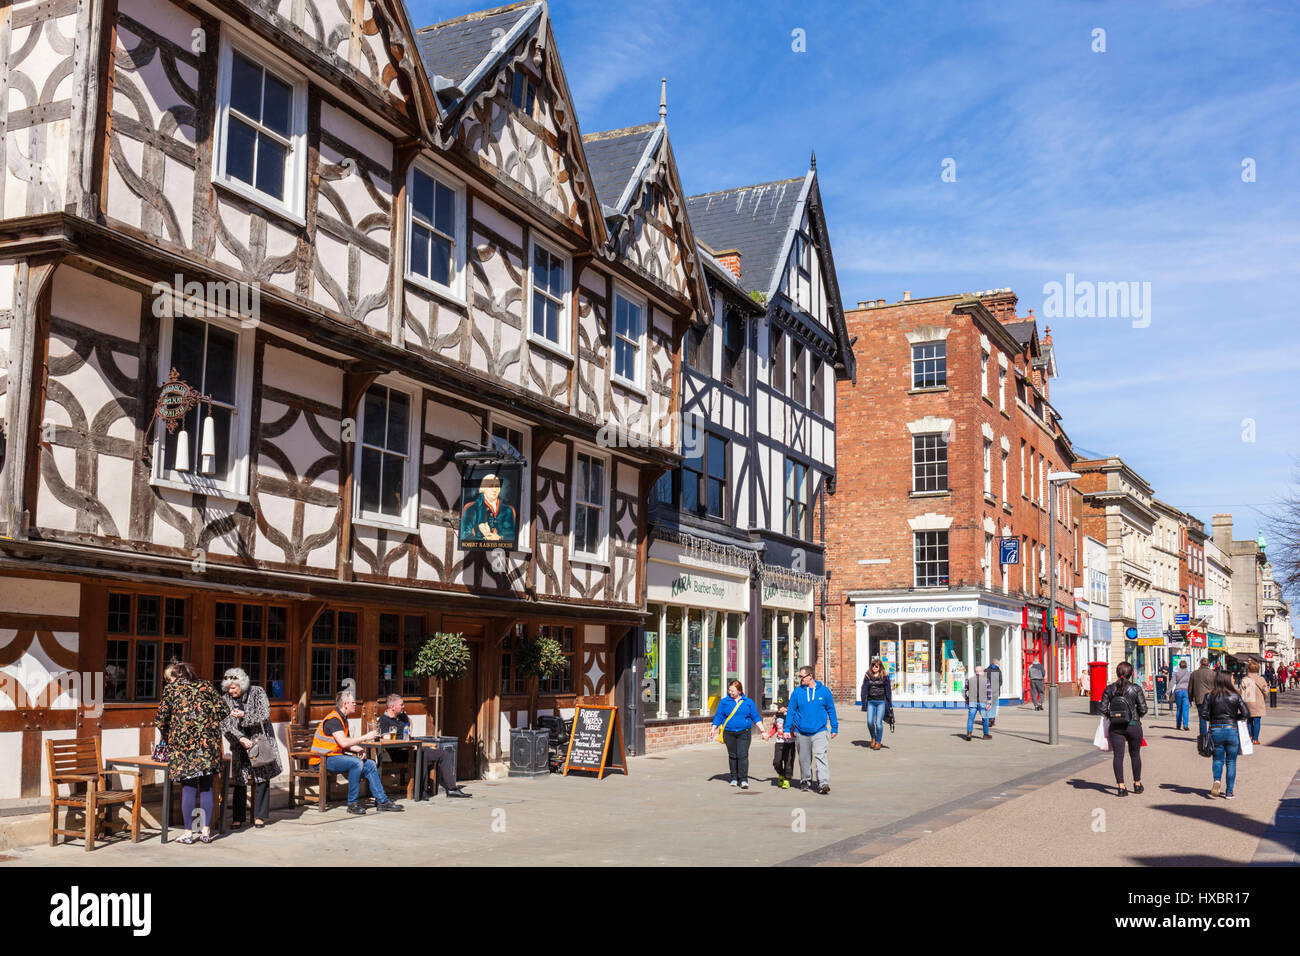 Le centre-ville de Gloucester gloucestershire uk pub street uk haut extérieur Photo Stock